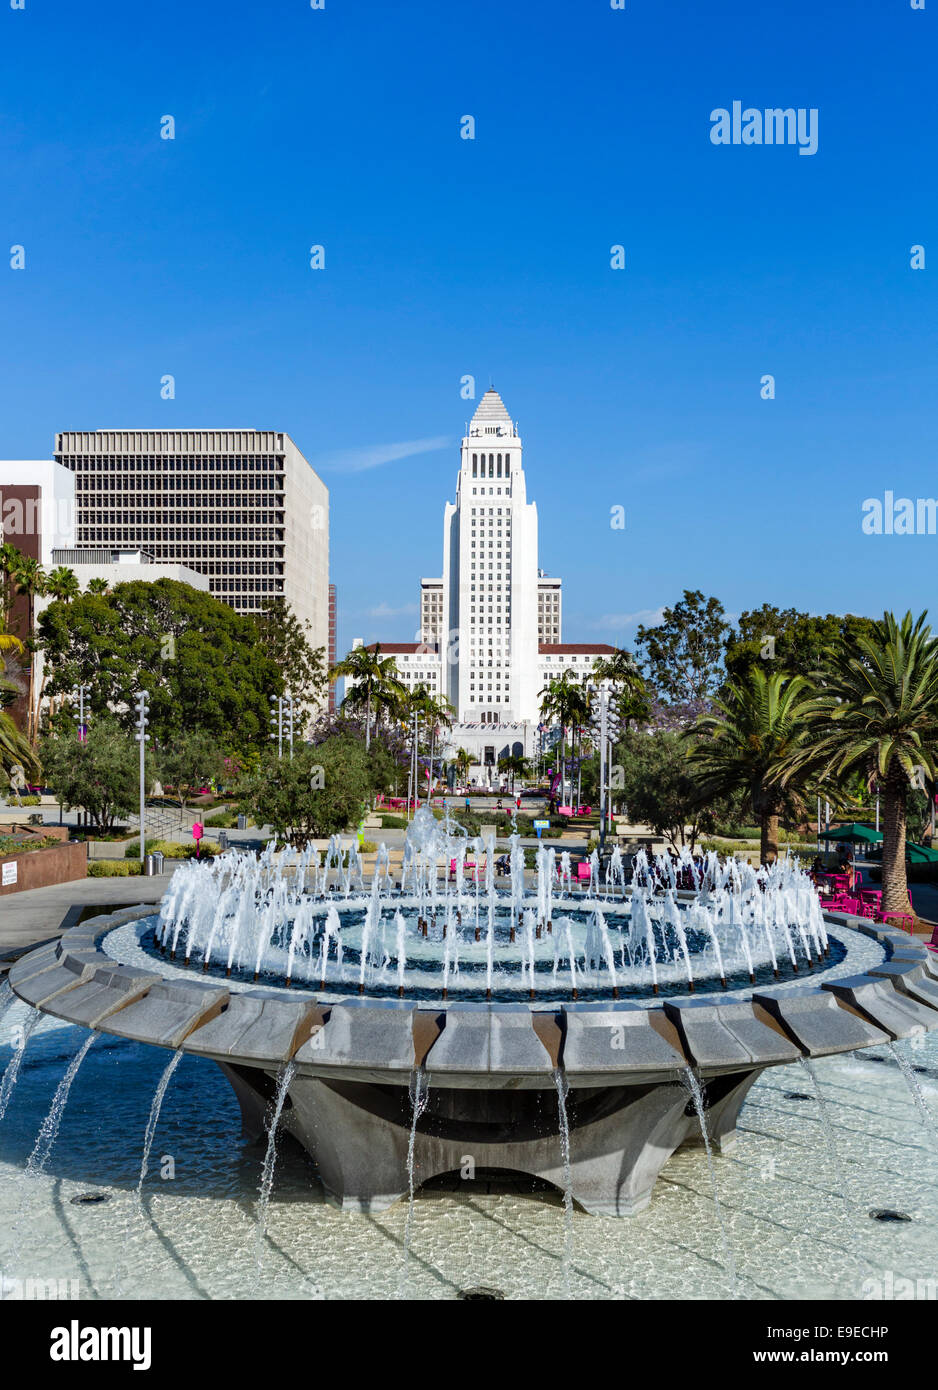 City Hall viewed from Grand Park in downtown Los Angeles, California, USA - Stock Image